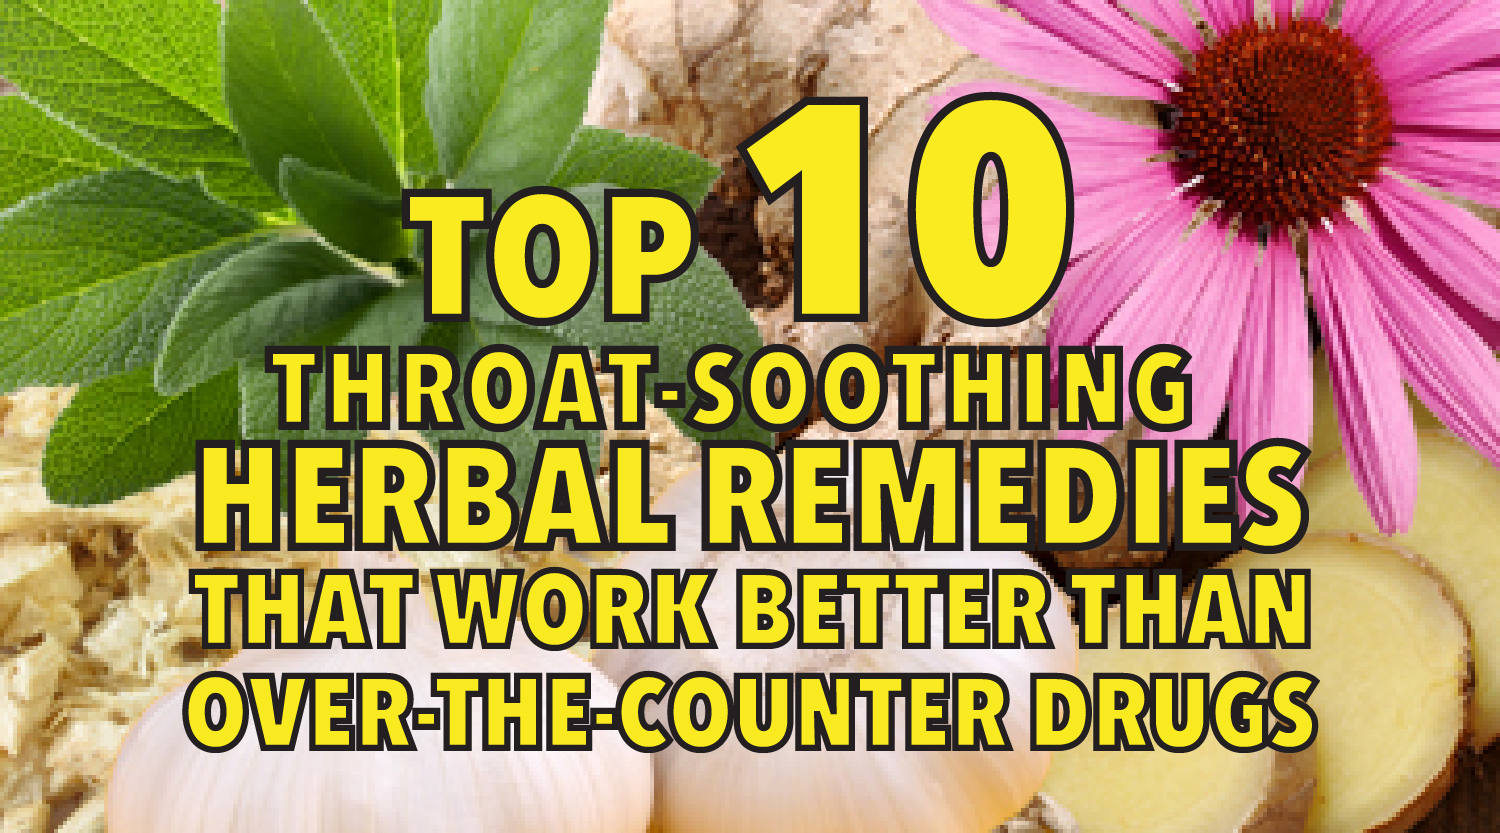 Top 10 throat-soothing herbal remedies that work better than over-the-counter drugs